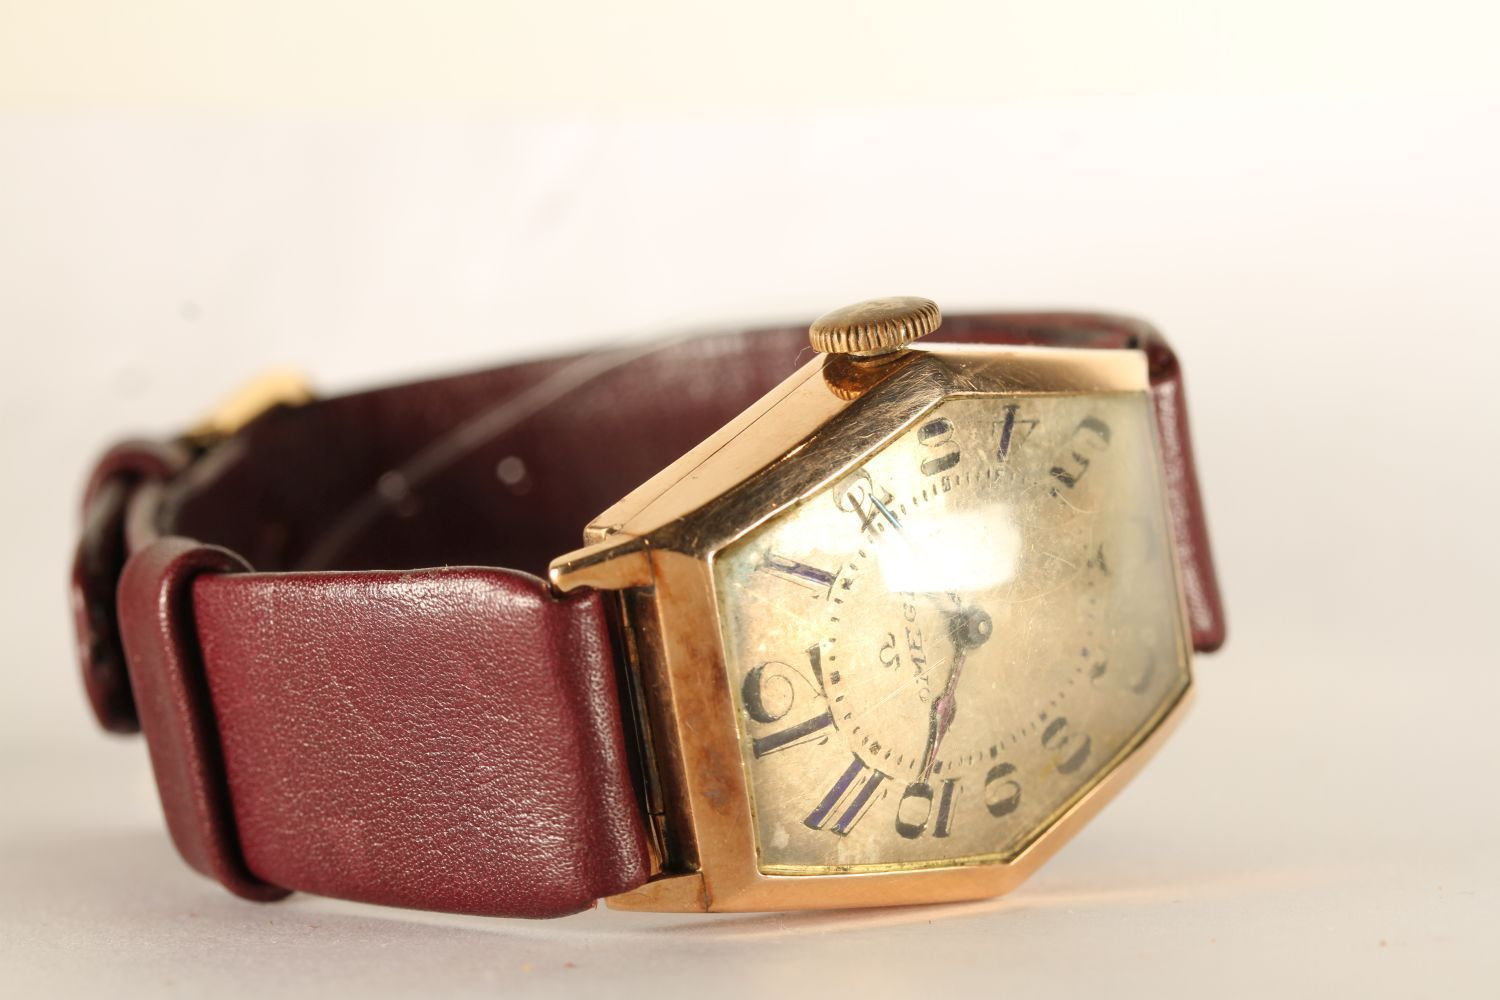 GENTLEMENS OMEGA OVERSIZE CIRCA 1920/30's WRISTWATCH, hexagonal aged dial with arabic numbers and an - Image 2 of 4